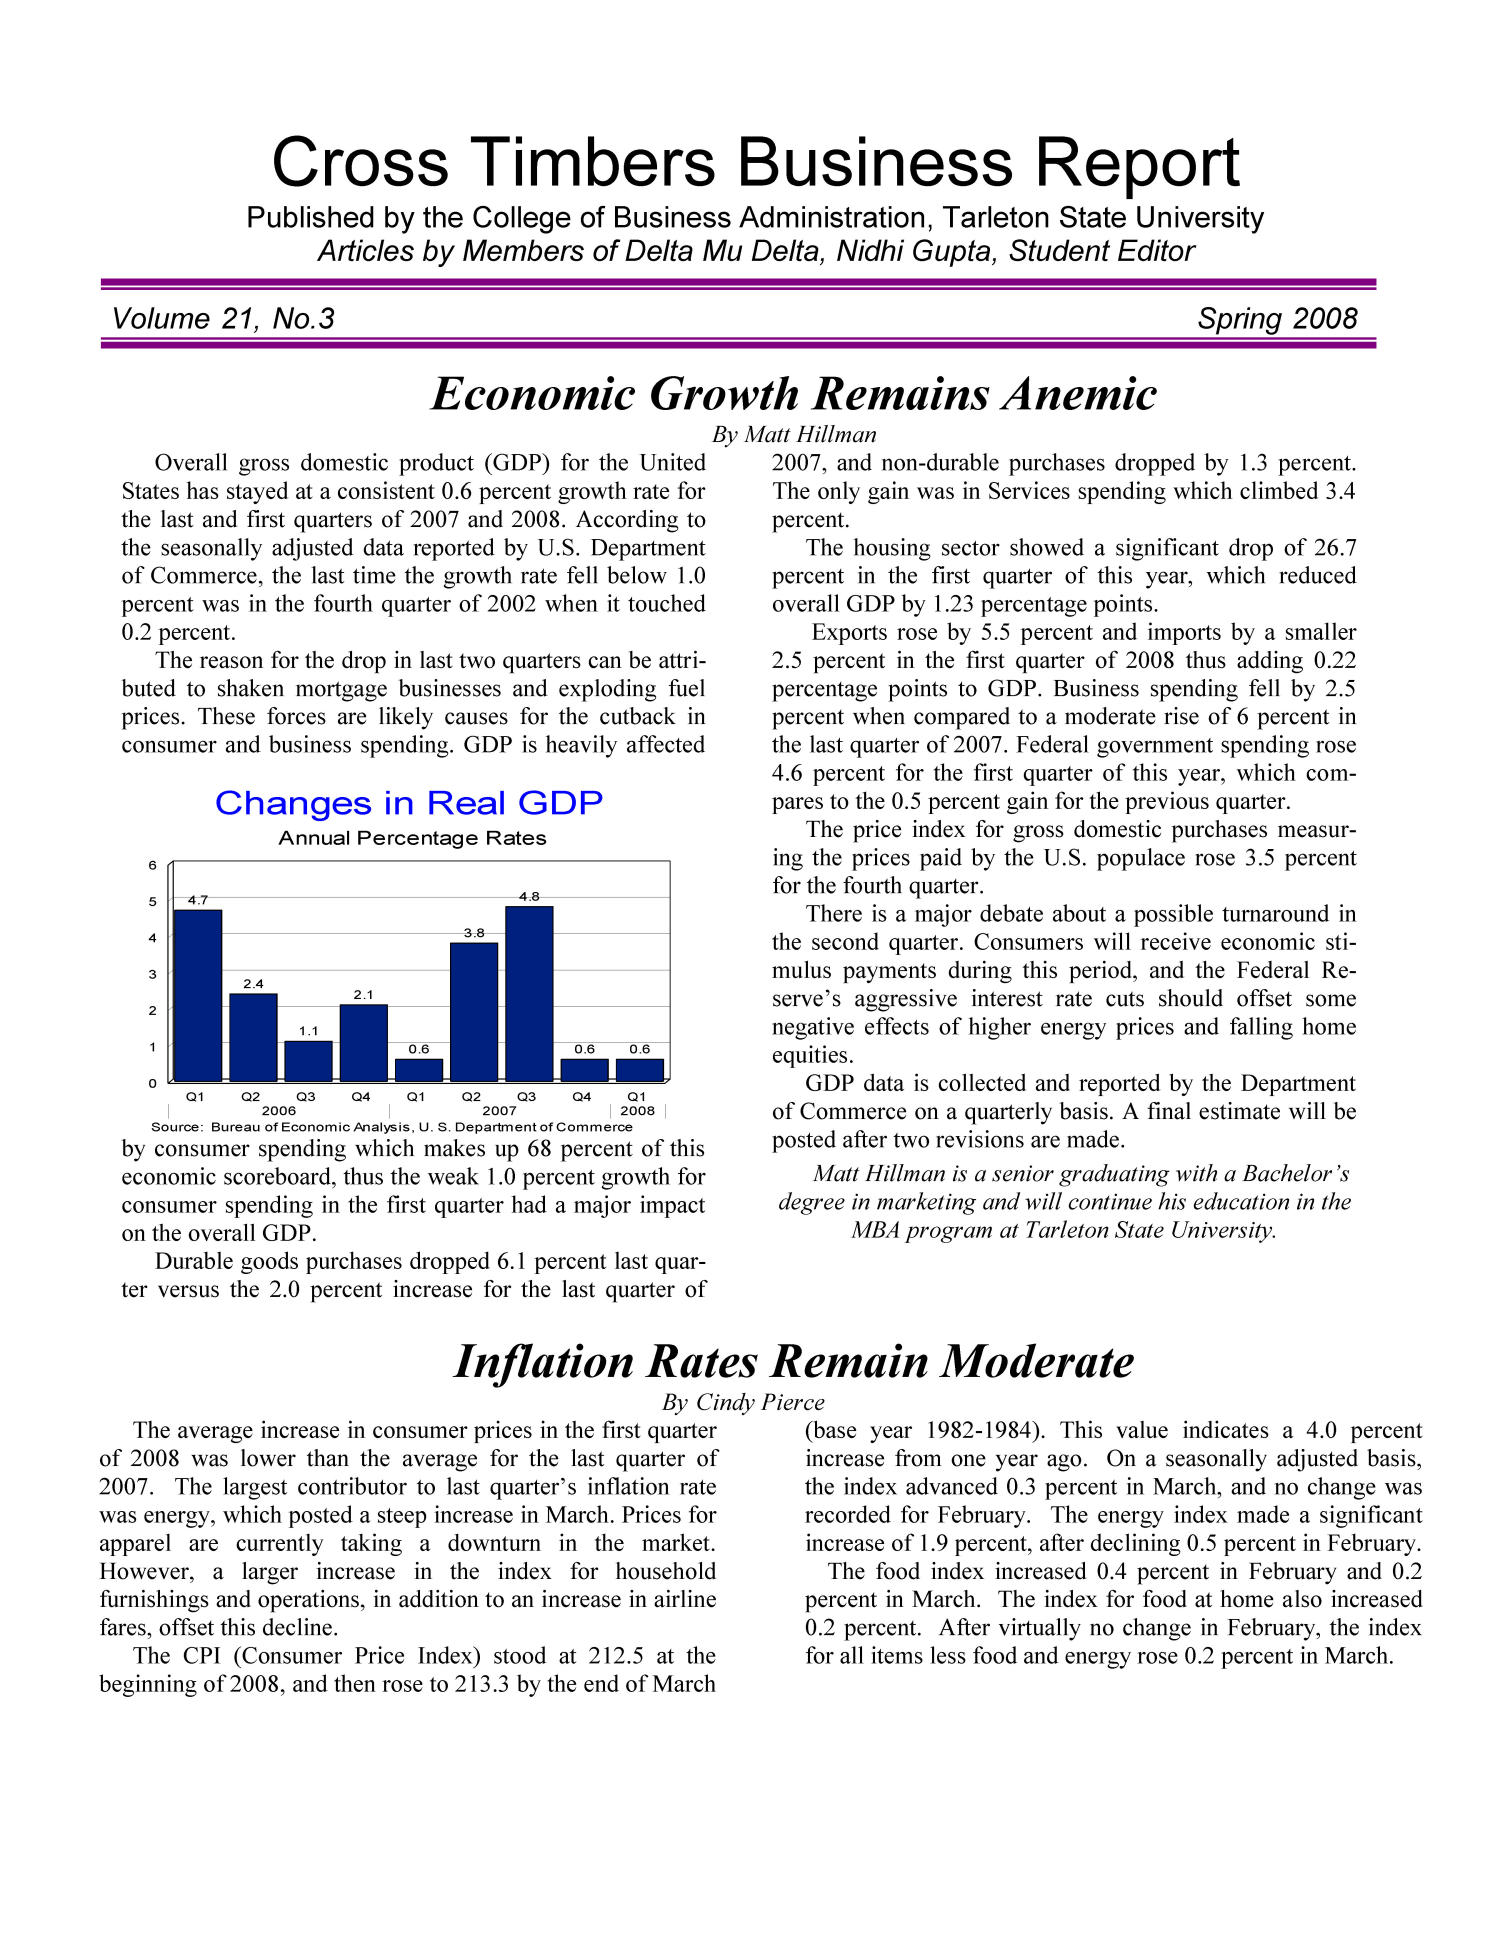 Cross Timbers Business Report, Volume 21, Number 3, Spring 2008                                                                                                      1